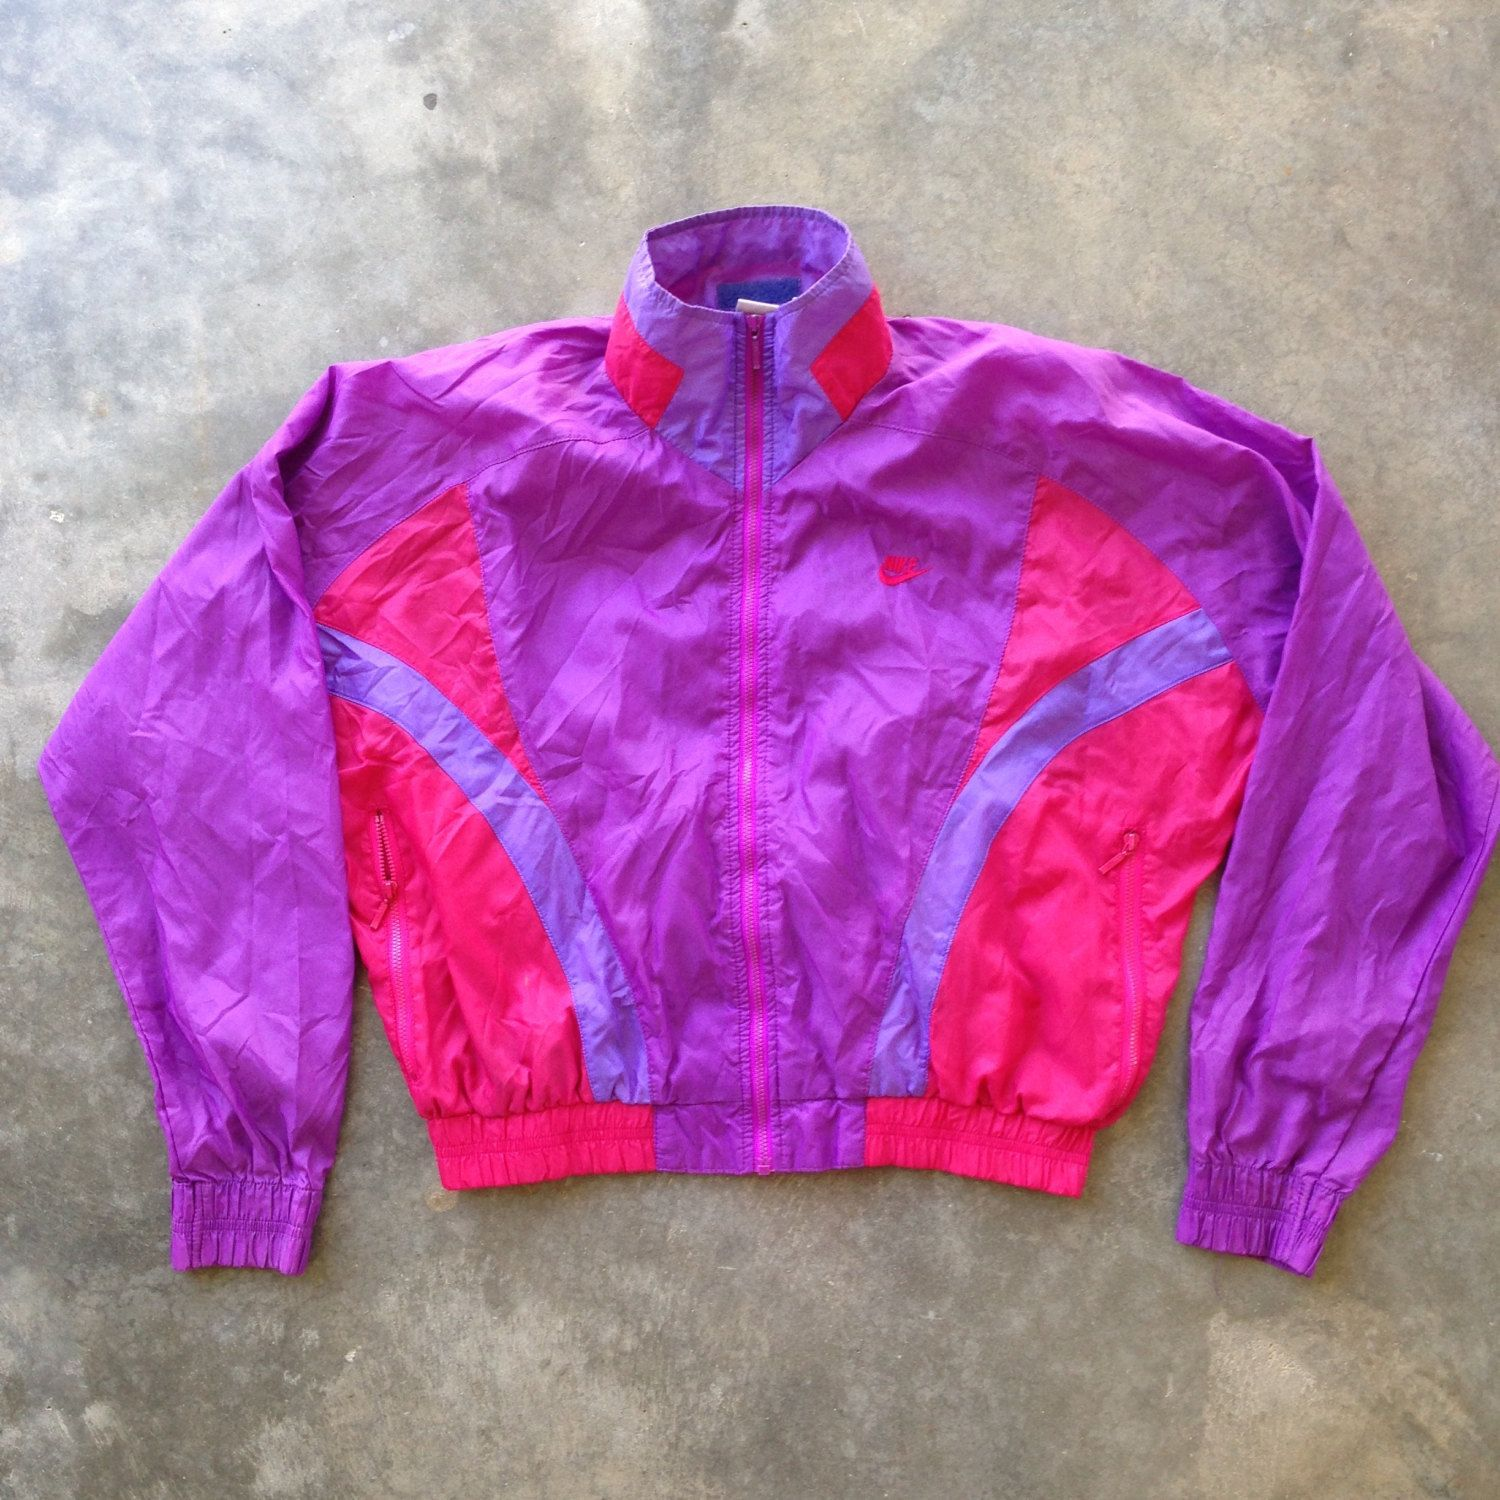 d6bdd07143 Vintage 90s Nike Pink Purple Womens Windbreaker Jacket- (Large) by  StreetDeco on Etsy